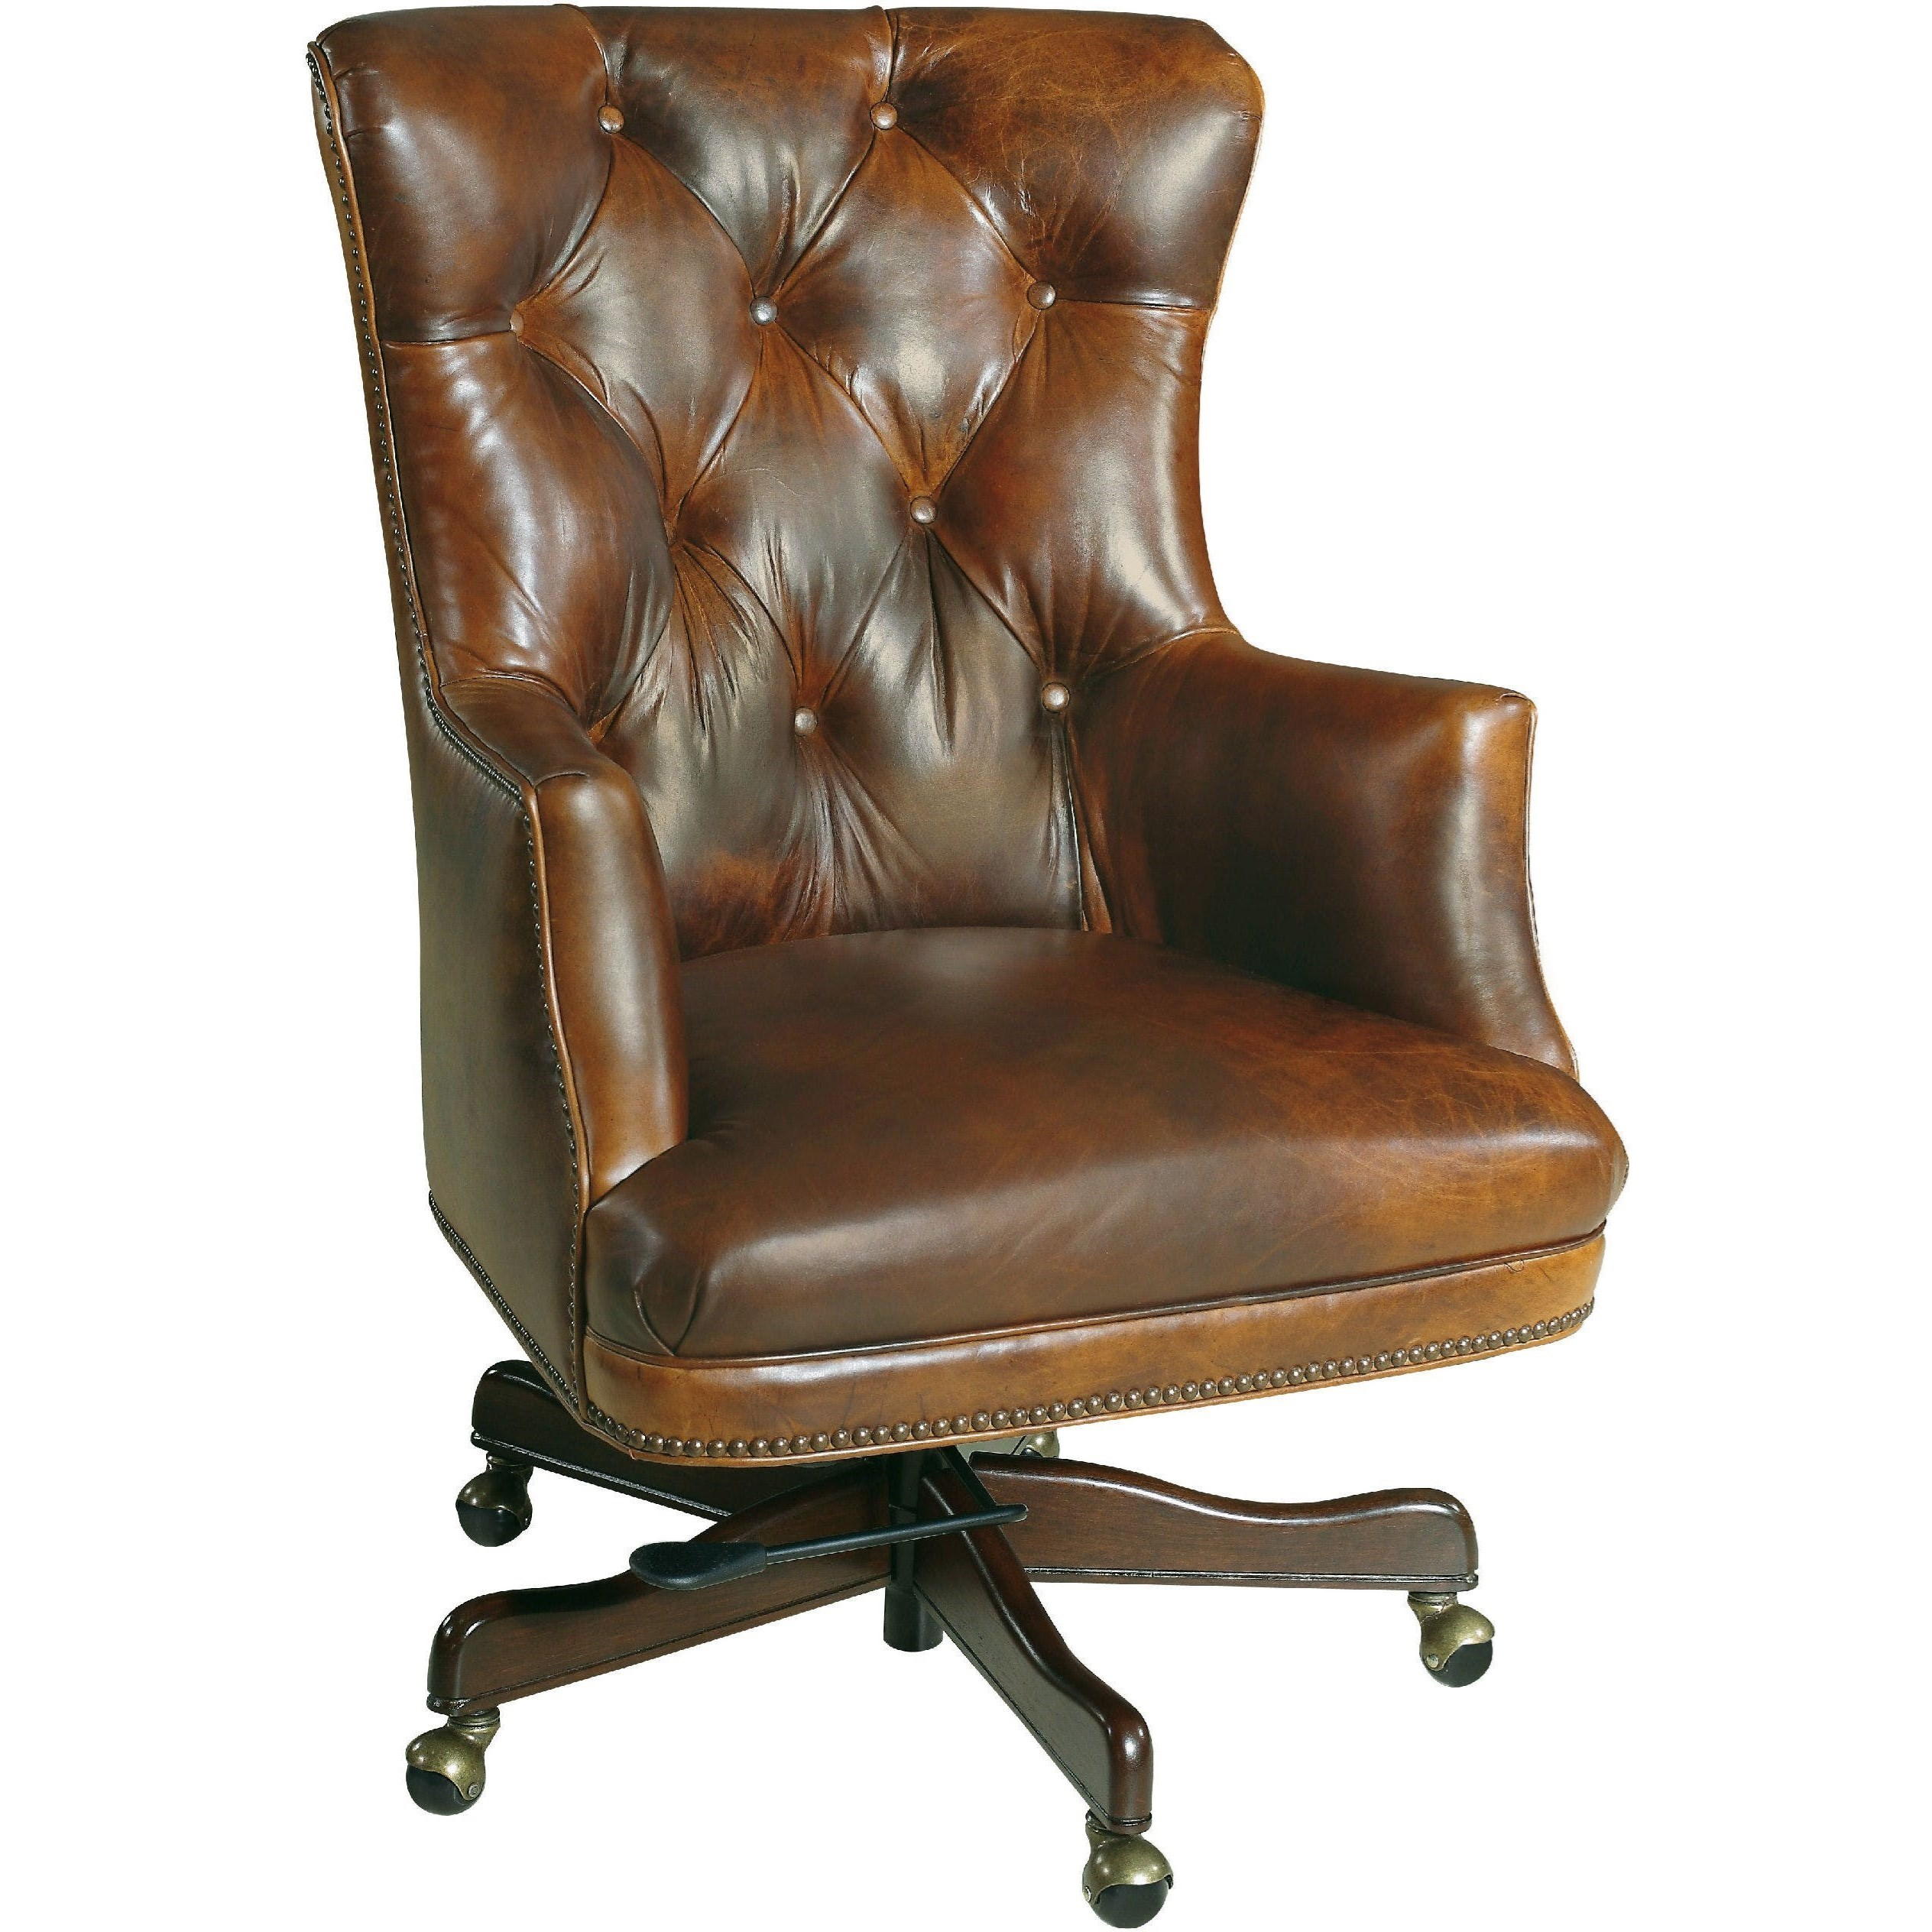 Executive Seating Executive Chair by Hooker Furniture at Stoney Creek Furniture